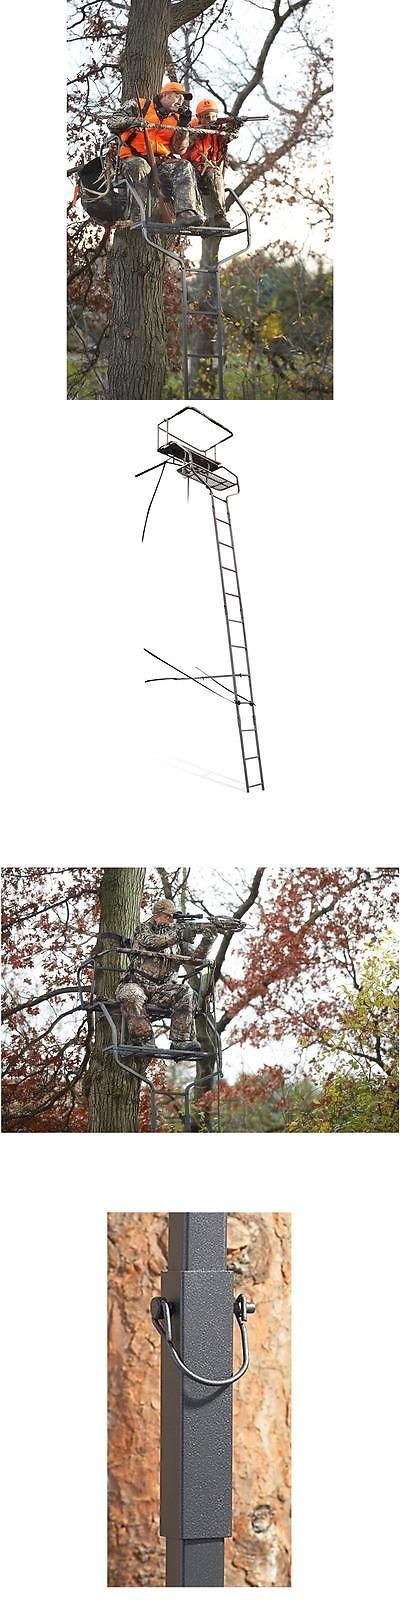 Tree Stands 52508: Ladder Tree Stand 18 Hunting 2 Man Foot Rest Deluxe Shooting Sniper Outdoors -> BUY IT NOW ONLY: $131.99 on eBay!